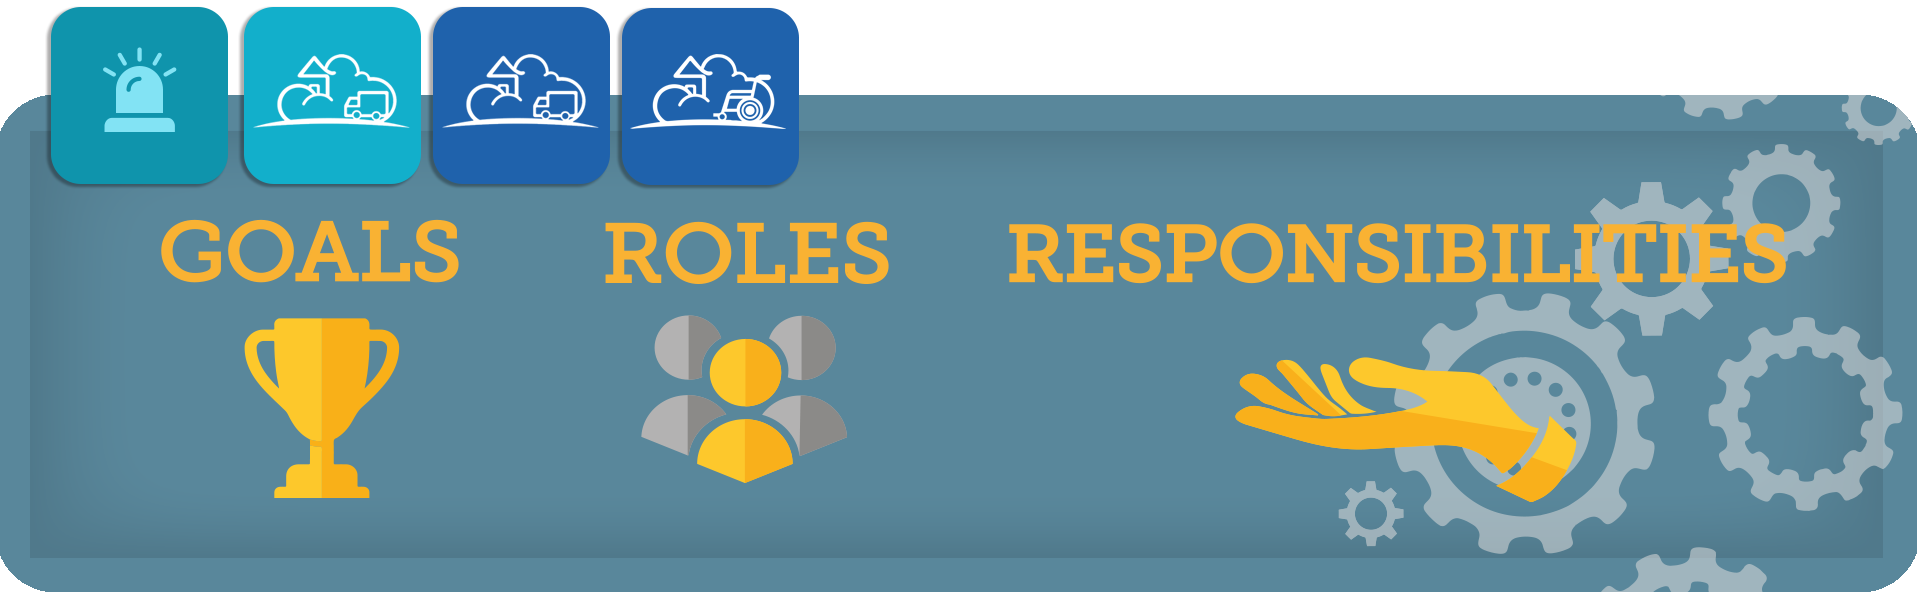 goals, roles and responsibilities banner